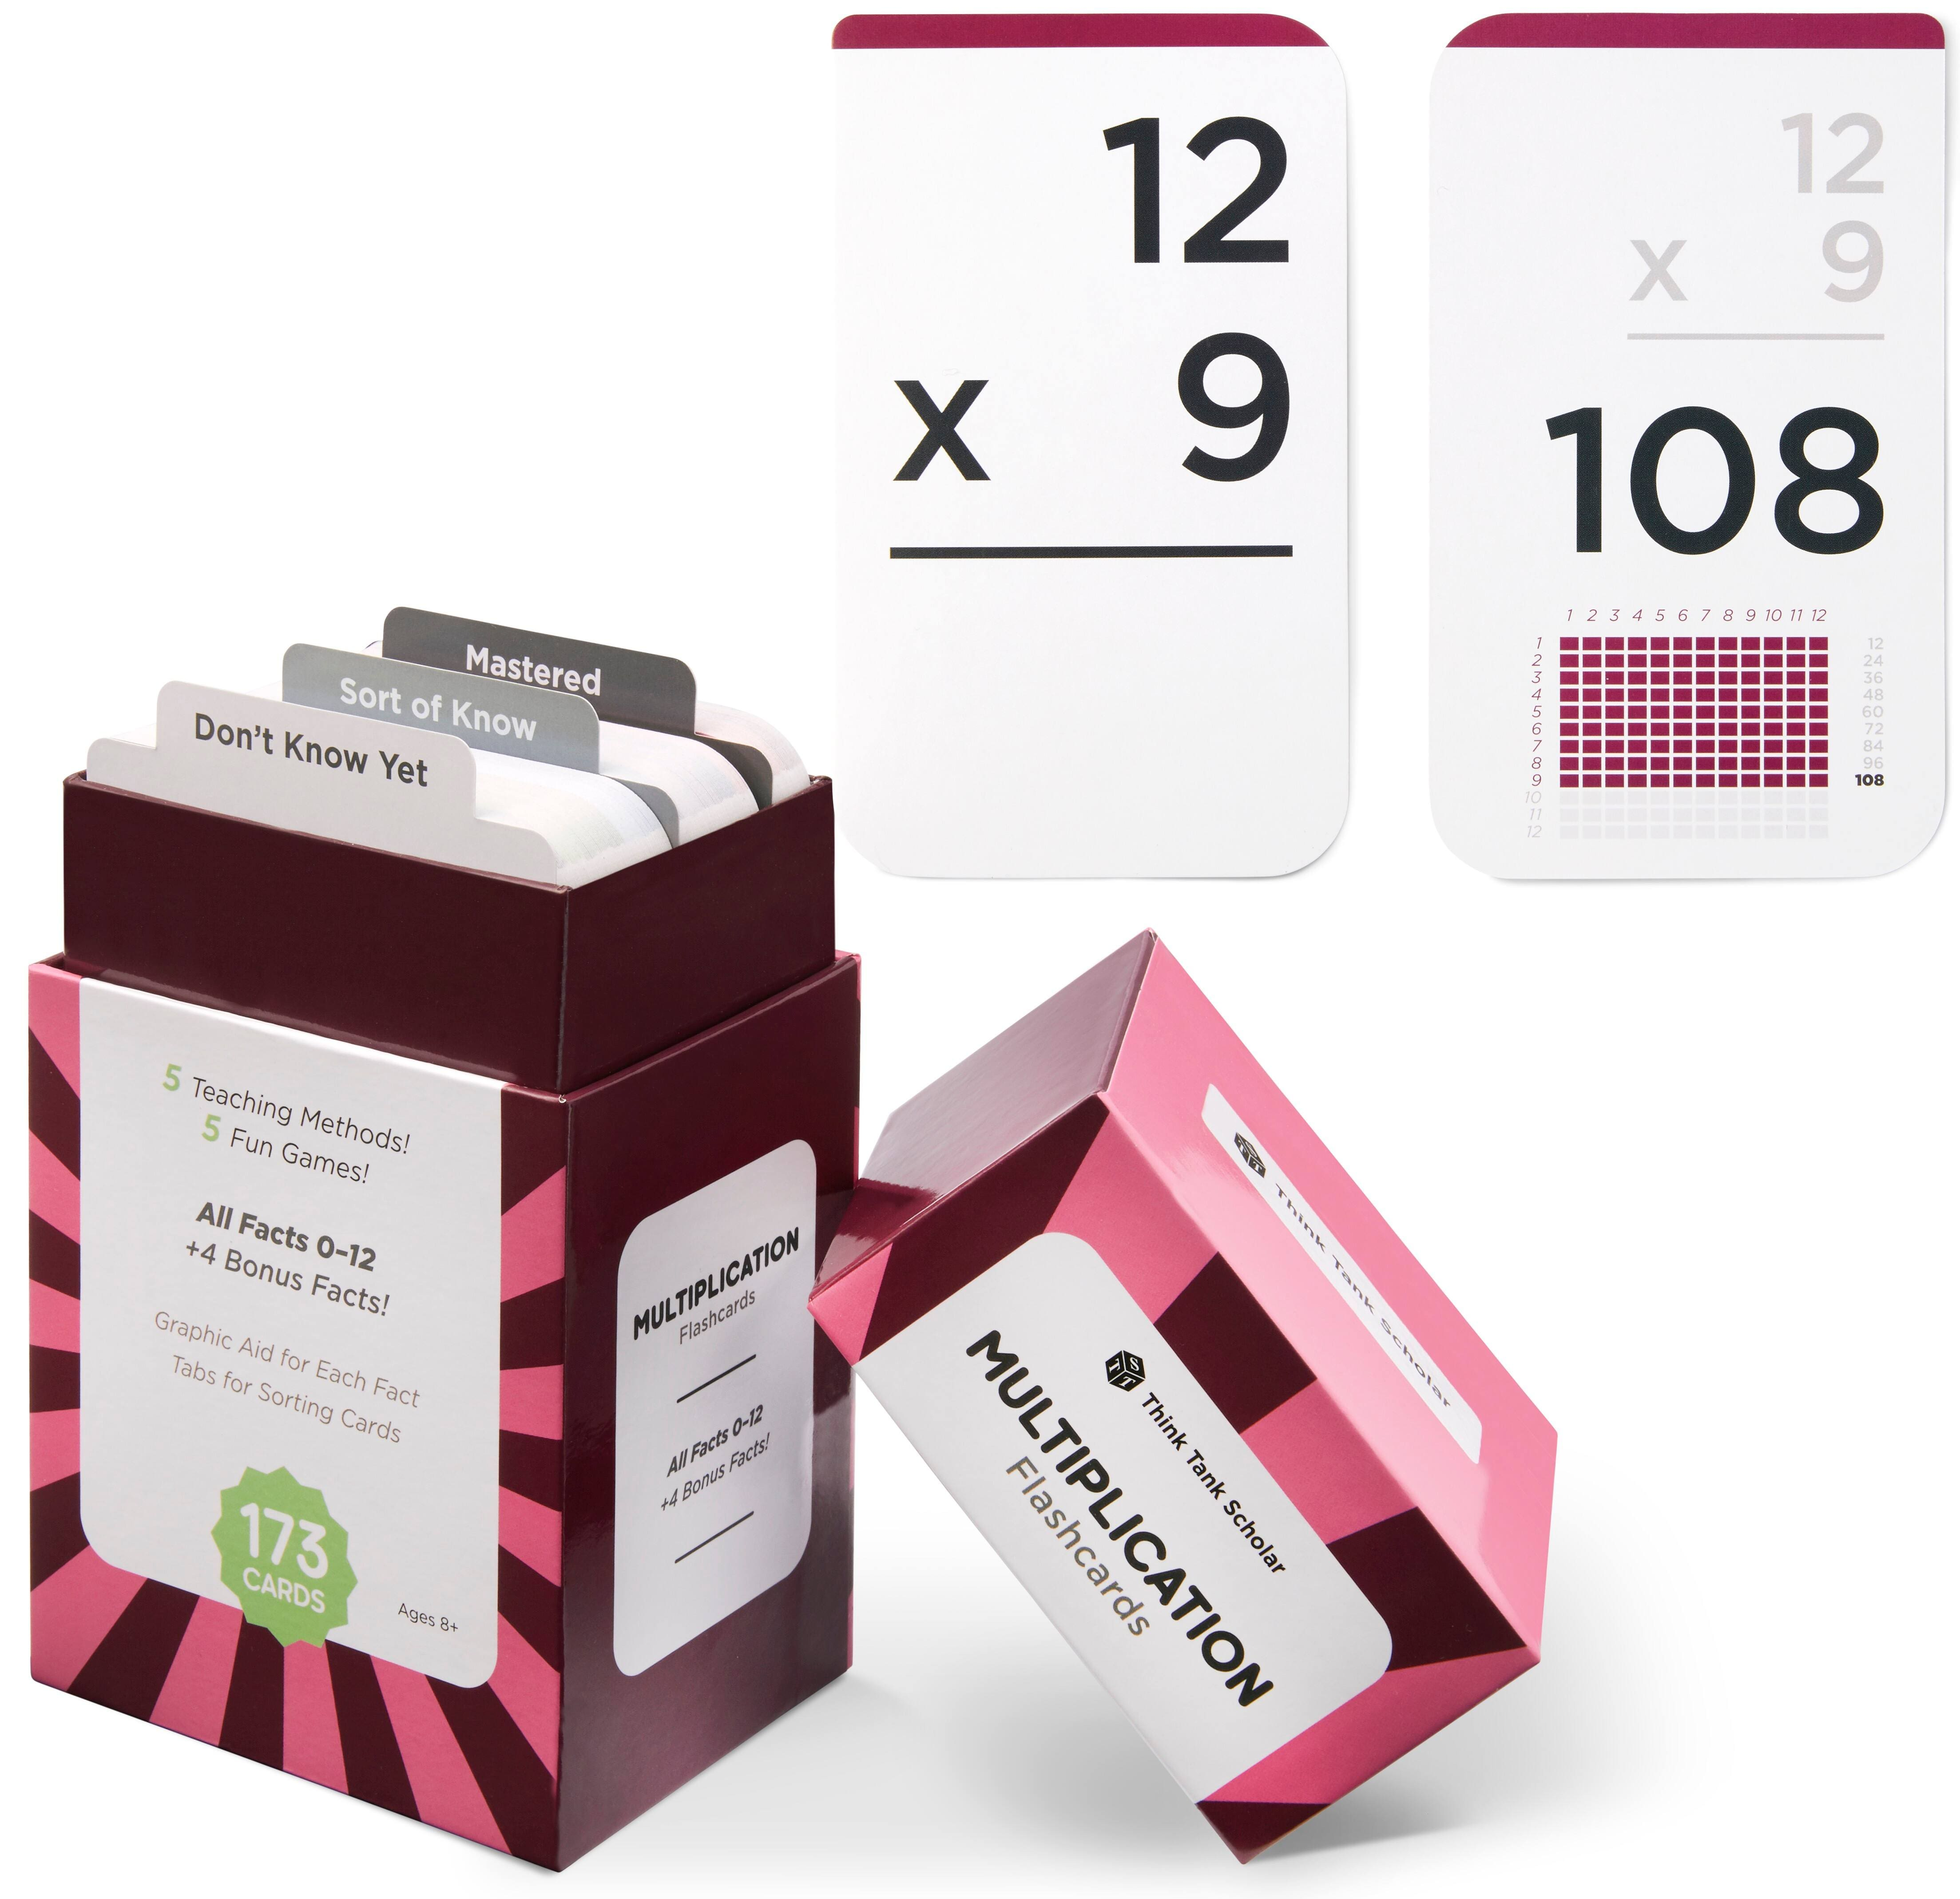 Think Tank Scholar Math Flash Cards for Kids (Stackable) $10.89 + Free Shipping w/ Prime or Orders $25+